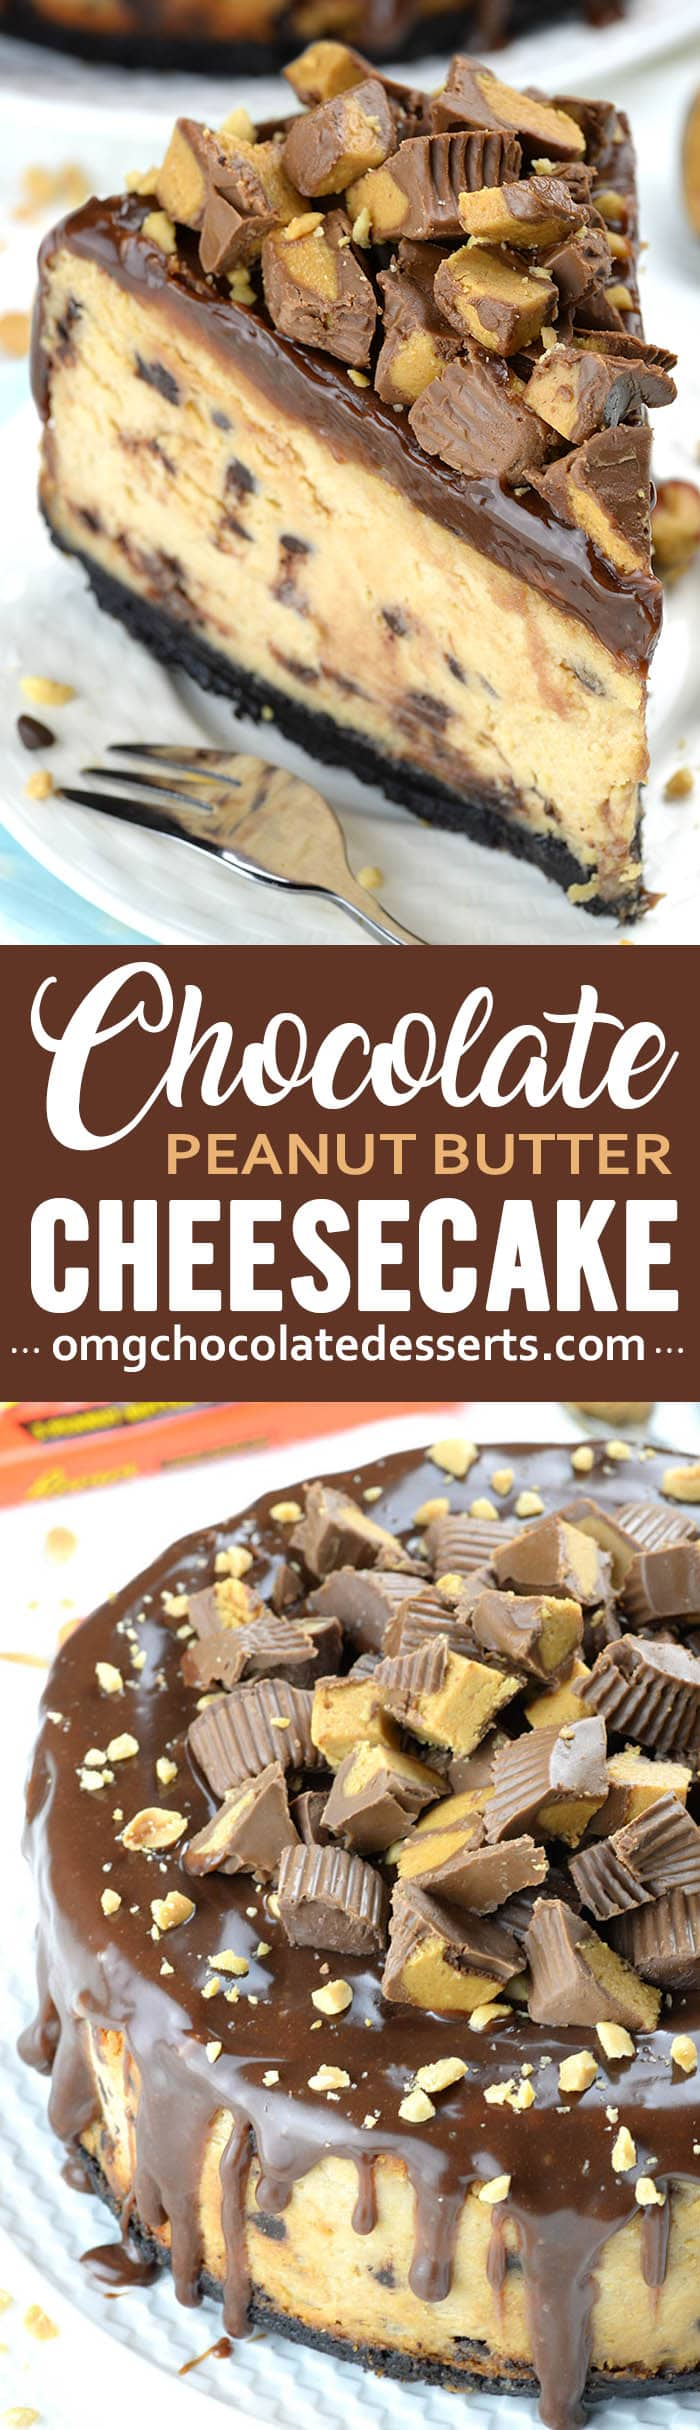 Rich and decadent, this Reese's Chocolate Peanut Butter Cheesecake Recipe is filled with chocolate and peanut butter and it will satisfy your peanut butter and chocolate cravings!